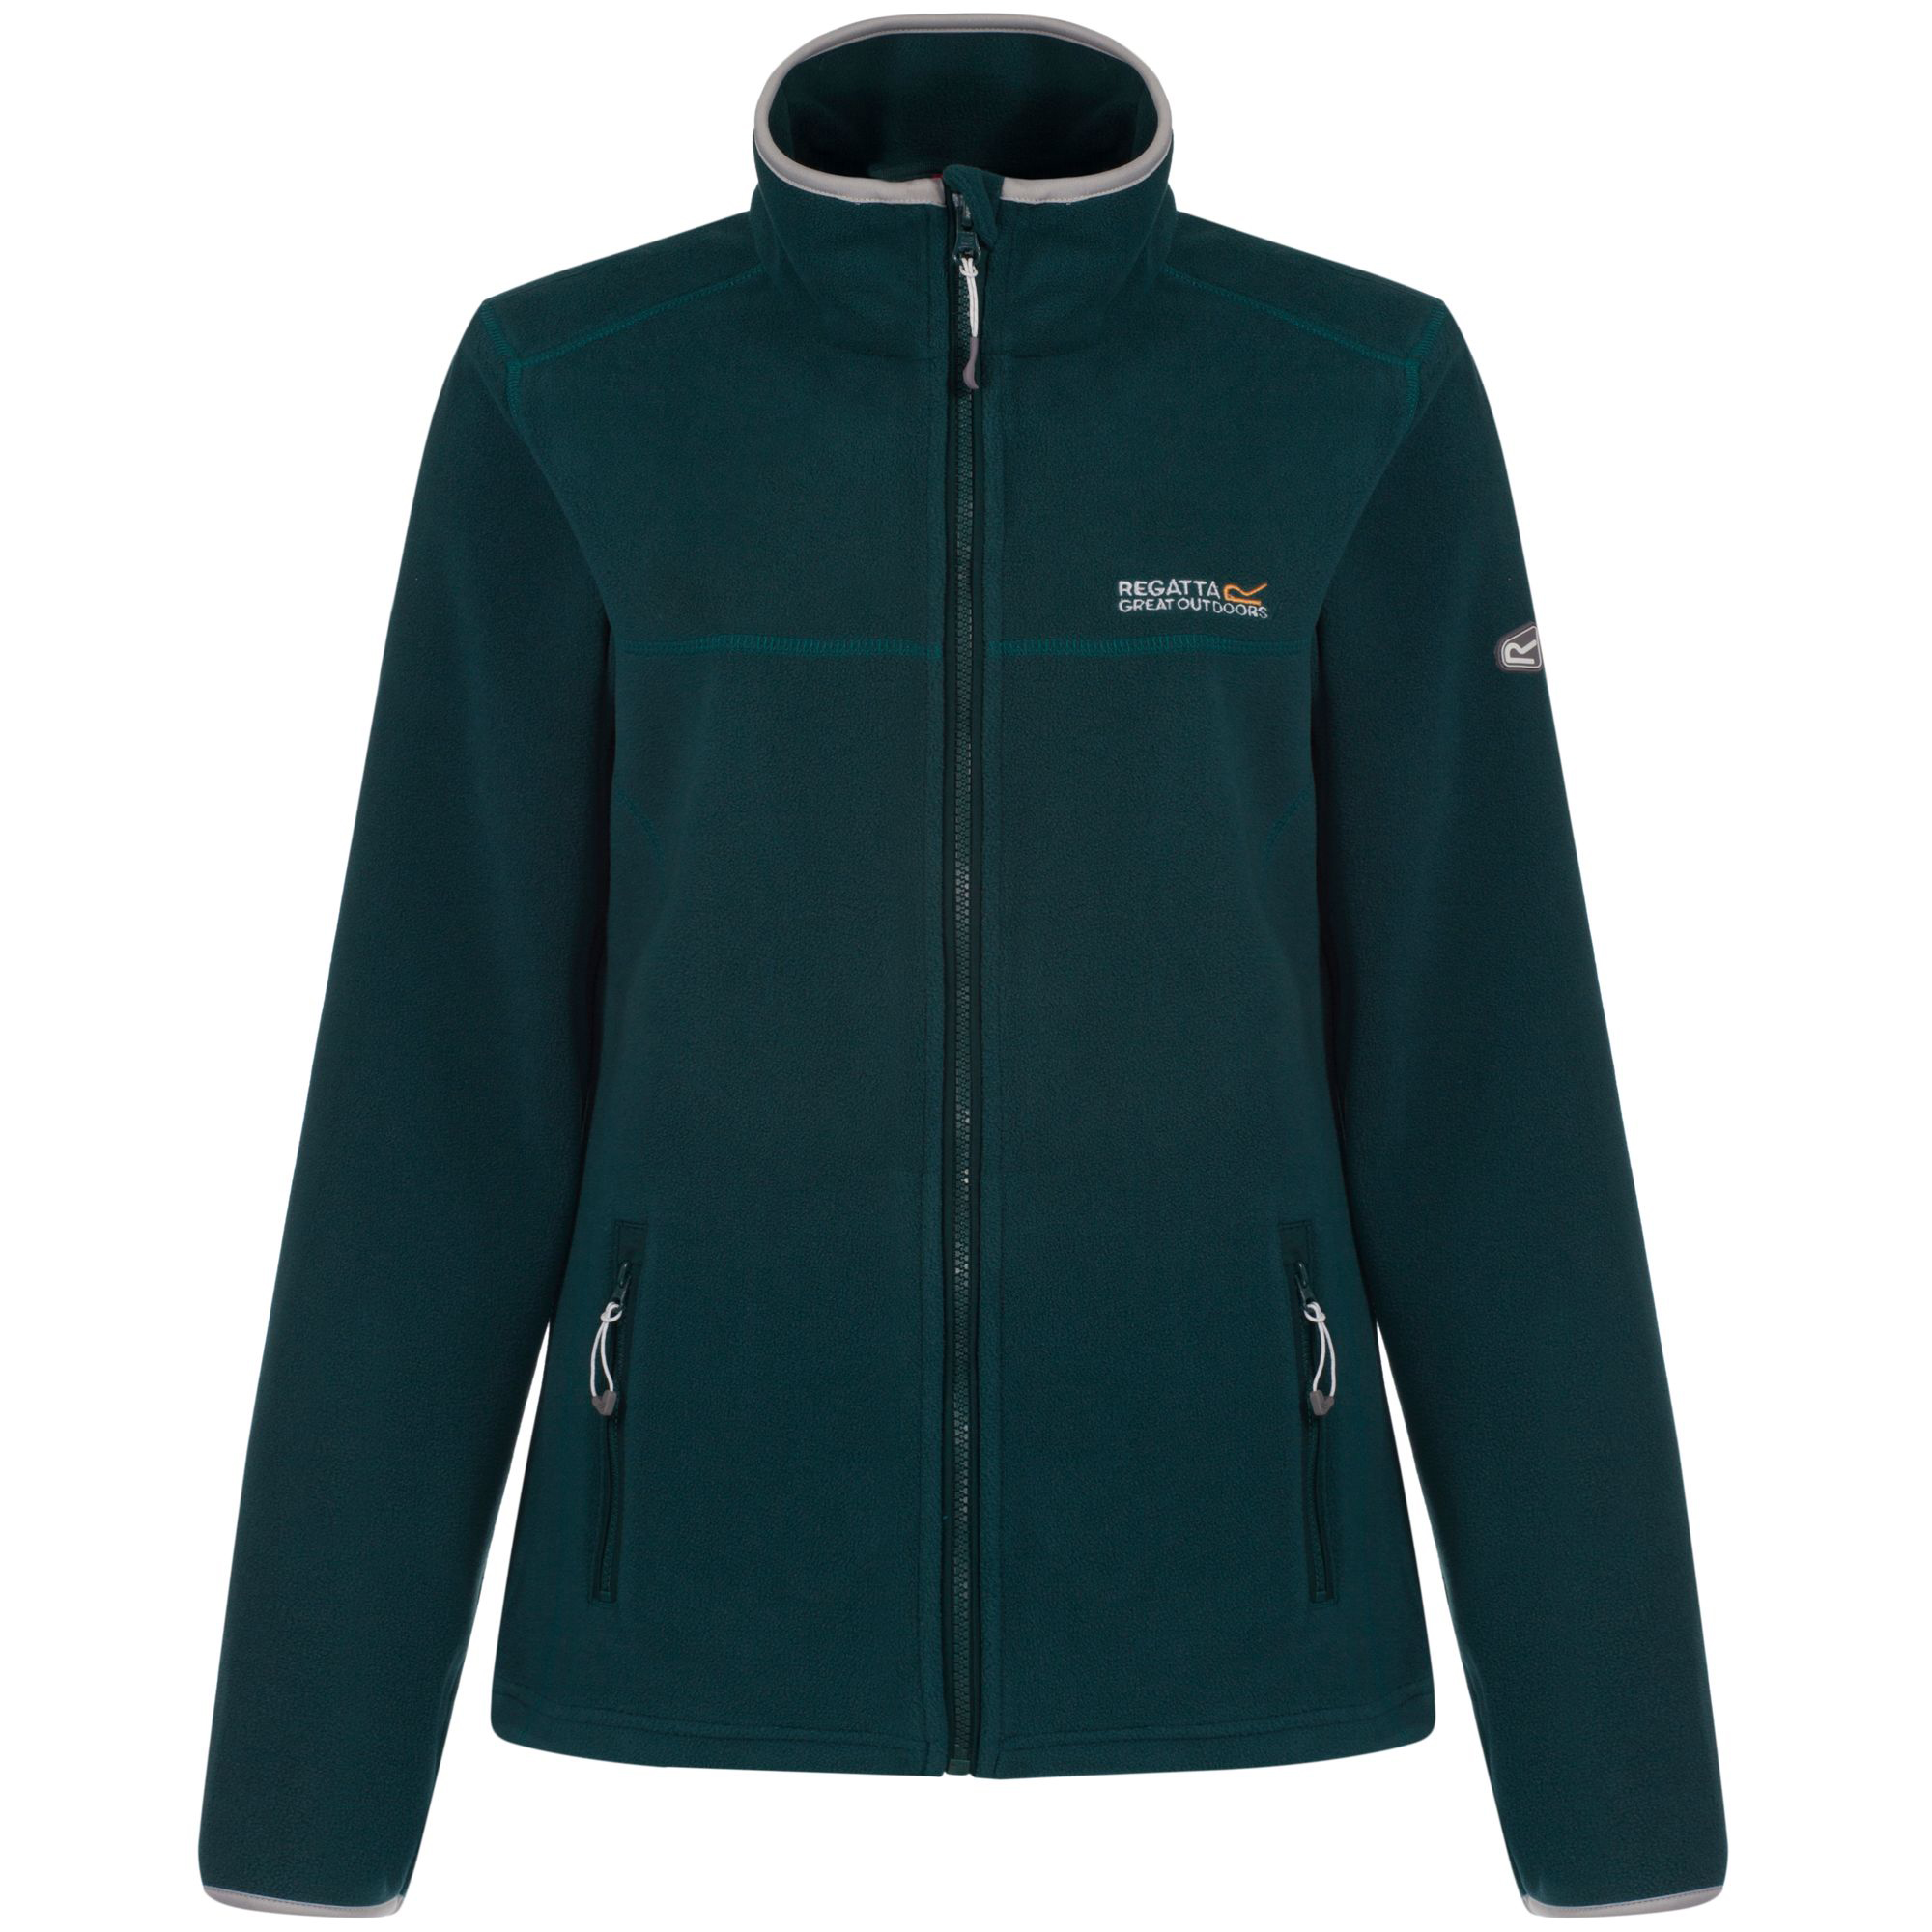 Styles of women's fleece jackets. Whether you're an avid sportswoman, love hiking and exploring, or need a warm, fleece jacket for the winter months, consider different styles and designs to keep you comfortable throughout the day.